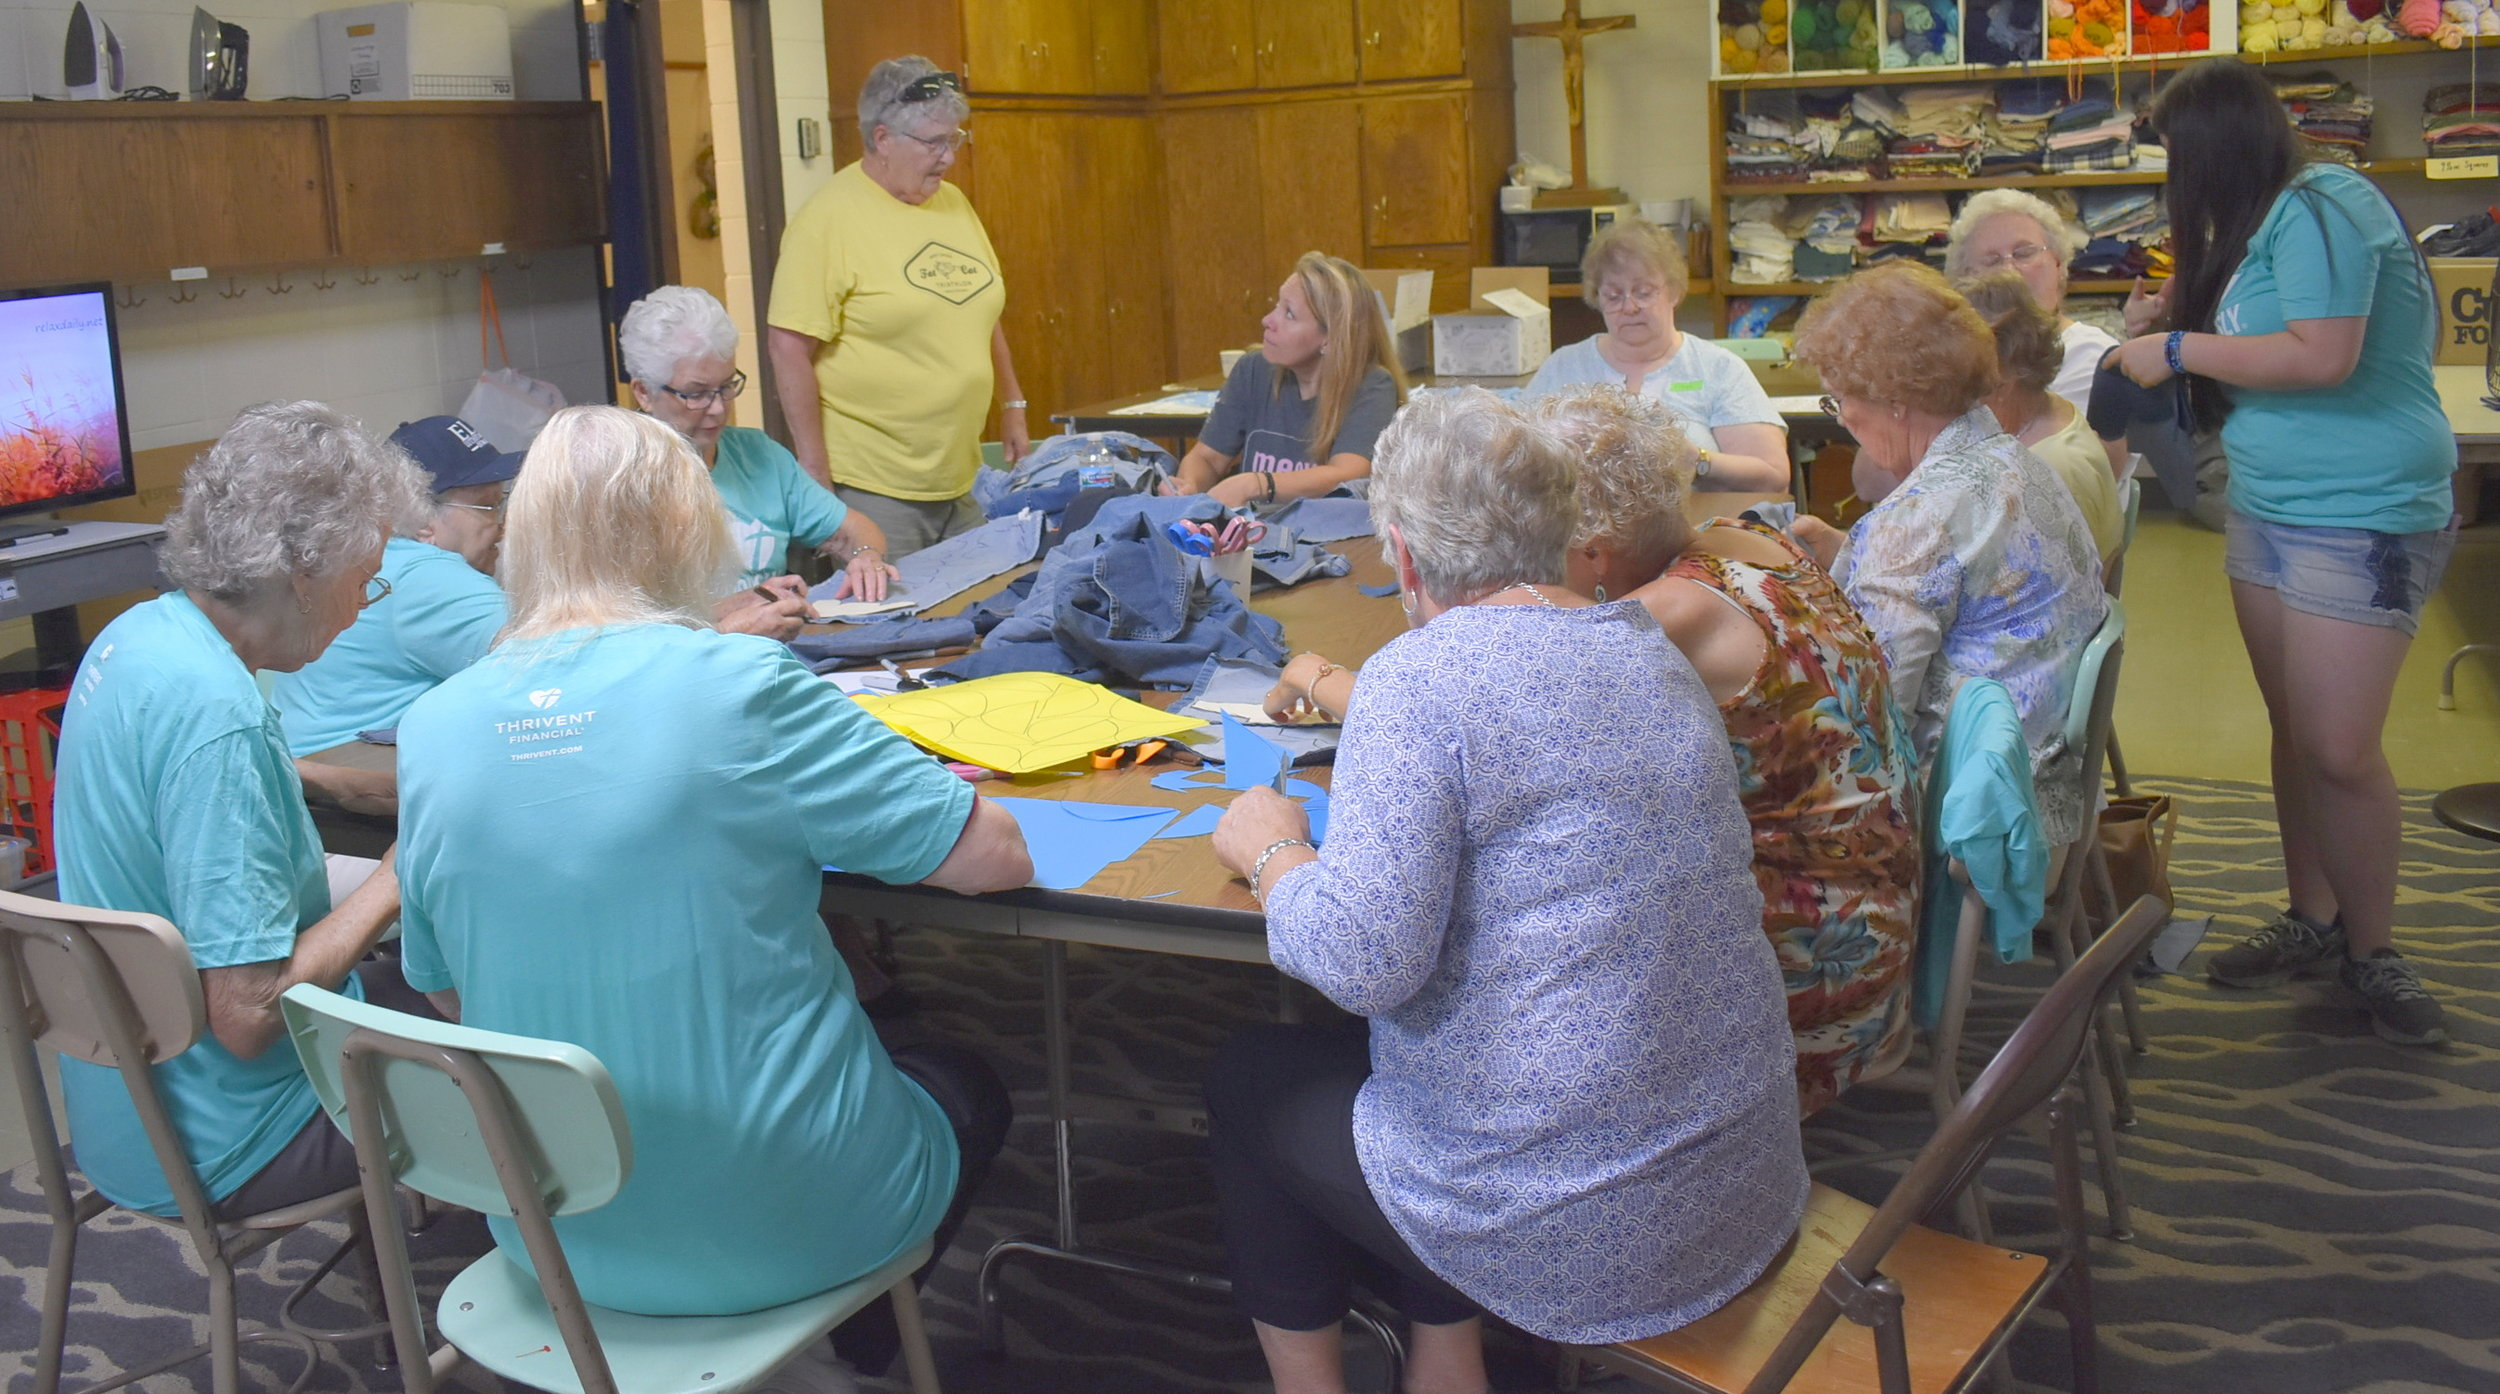 Teaching a group of women at Elim Lutheran Church how to create the parts for children's shoes from jeans and file folders. These components will be transformed by seamstresses and cobblers in Uganda into size 5 children's shoes.